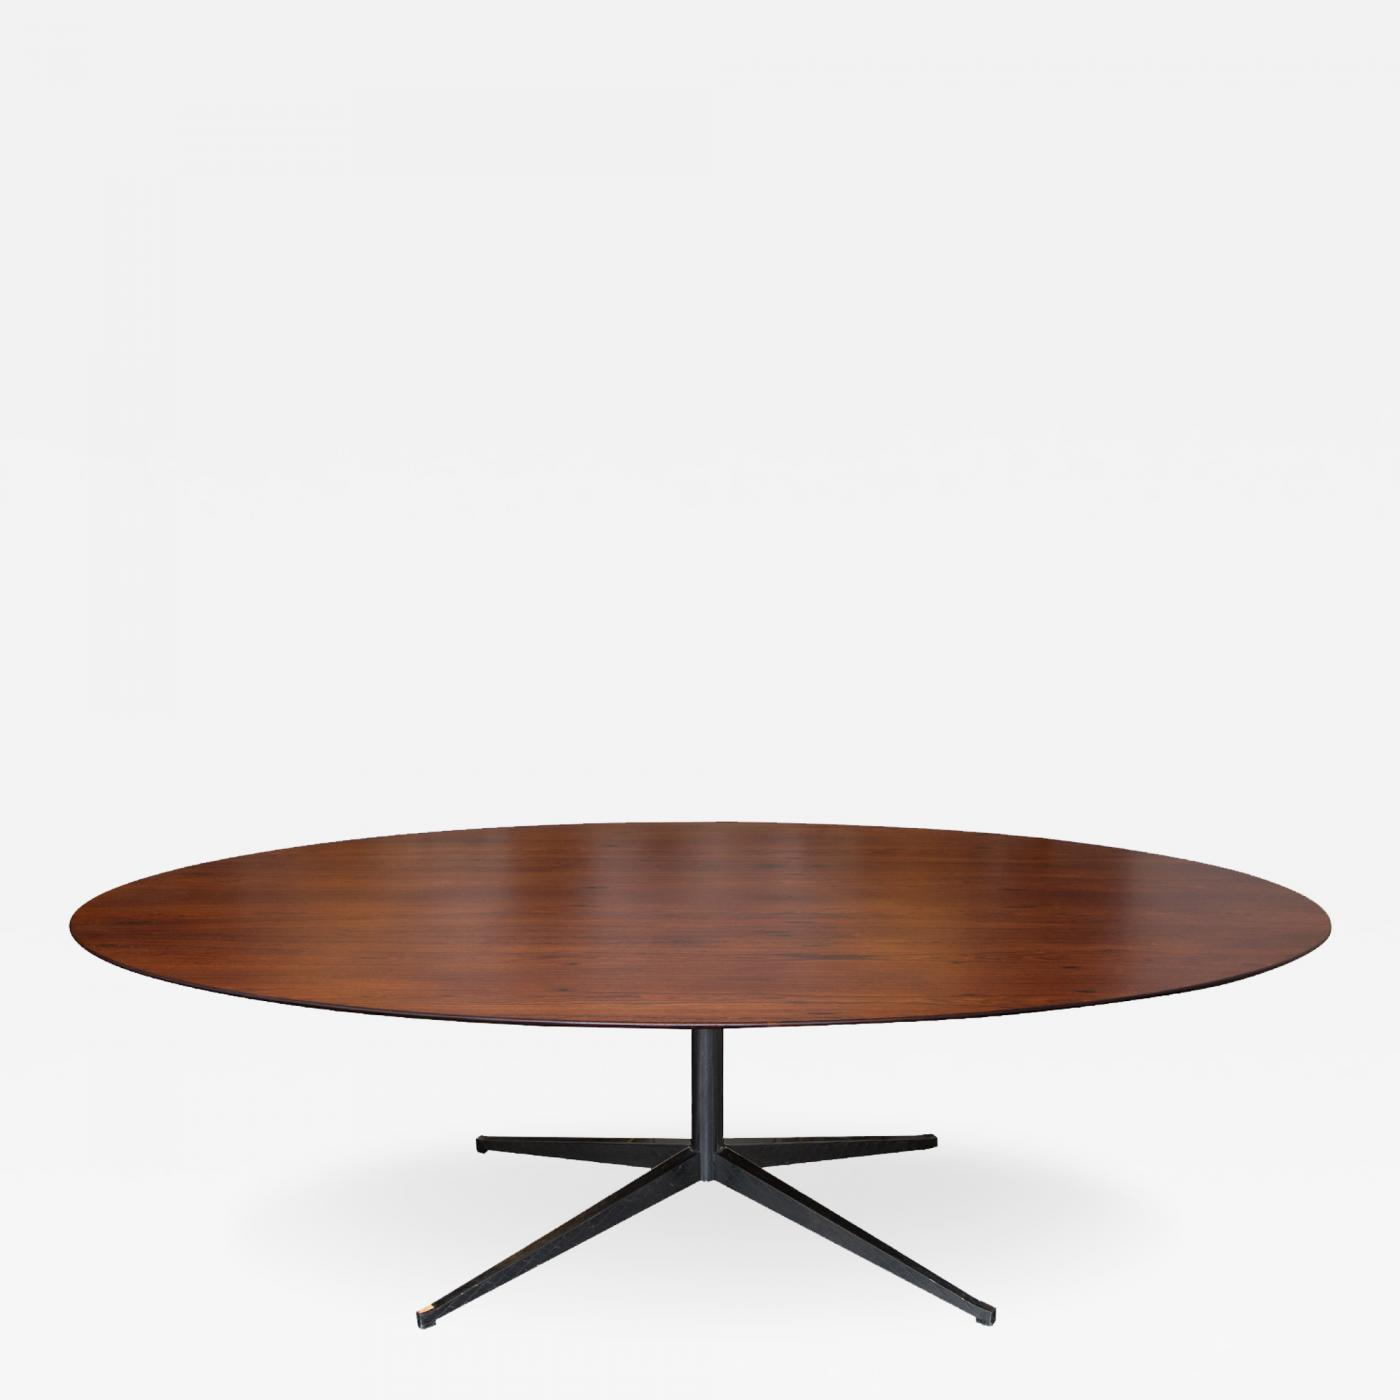 Florence Knoll Rosewood Oval Dining Table on Chrome Pedestal